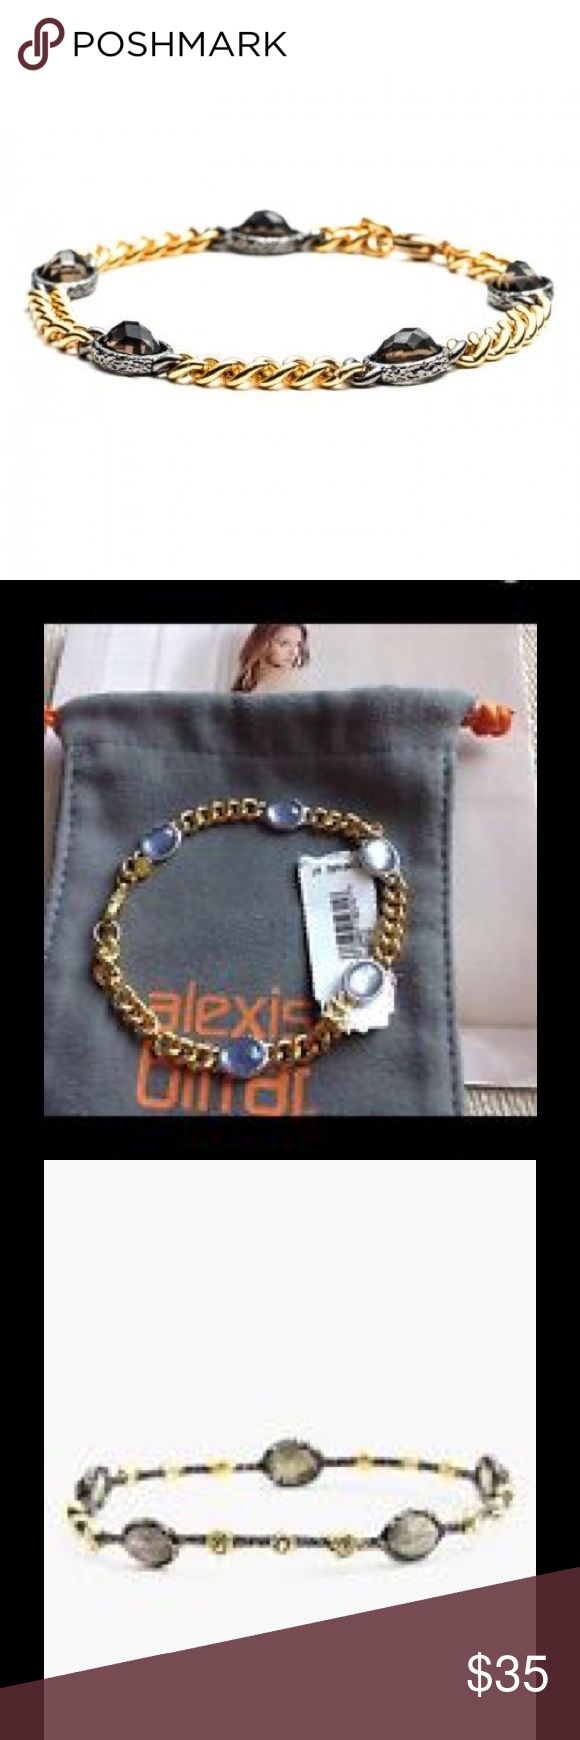 ALEXIS BITTAR JARDIN de PAPILLON BRACELET. Chain bracelet in gold with grey crystal stones.  Has been worn. In very good condition.  Alexis BITTAR Authenticity tag by claw fastener.  Pic # 4 No longer have sales tag. Alexis Bittar Jewelry Bracelets